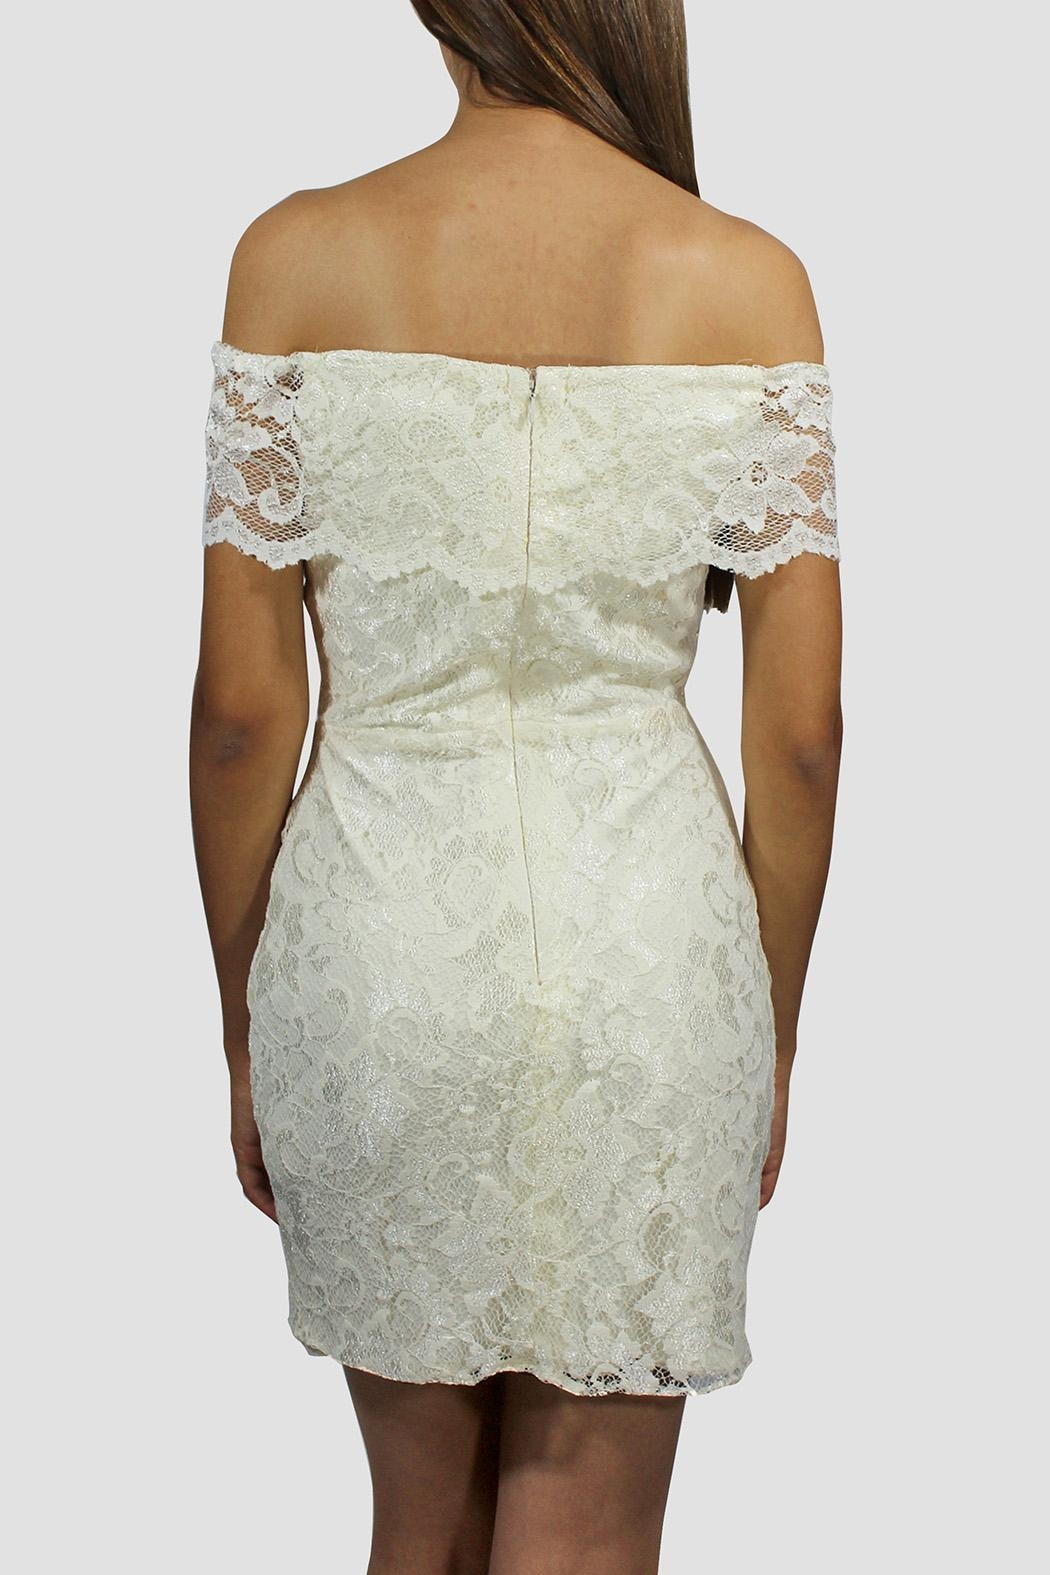 SoZu Lace Cocktail Dress - Side Cropped Image